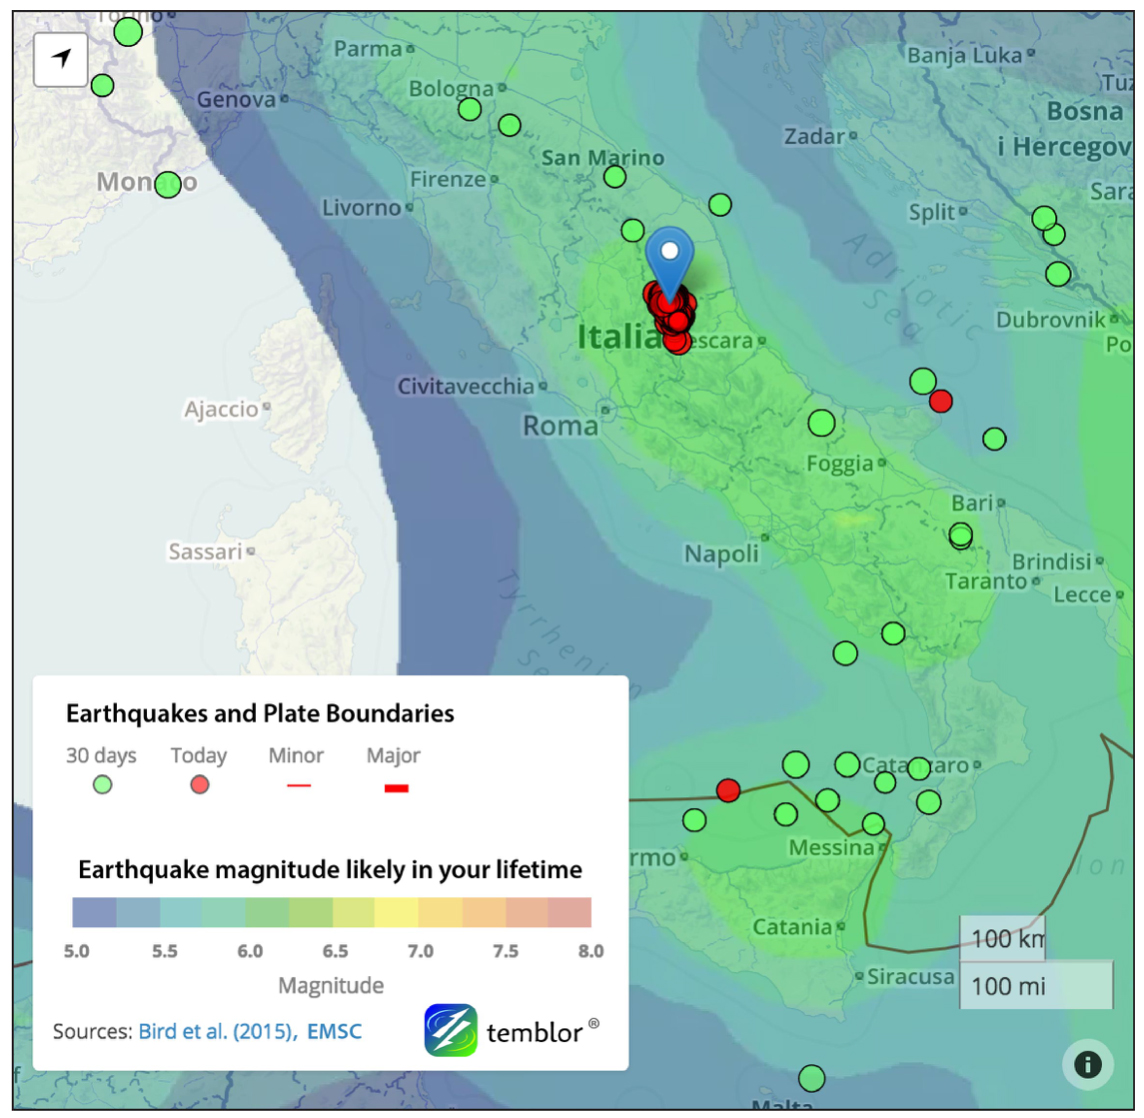 Temblor map of the aftershocks, with the GEAR model of Bird et al (2015).